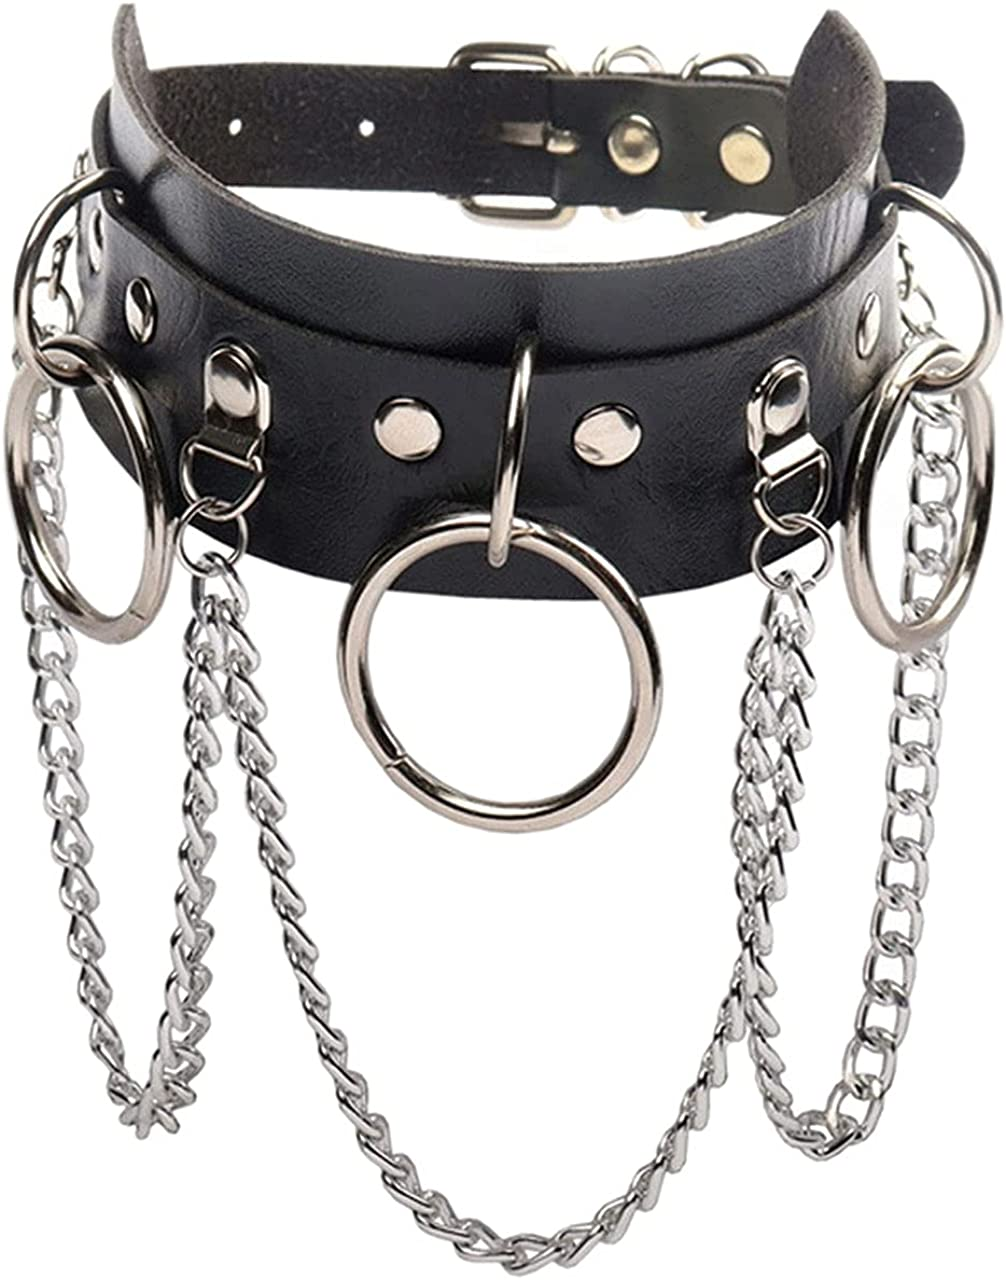 Olbye Circle Leather Choker Necklace Black Studded Rock Punk Collar Necklace PU Gothic Short Necklace Adjustable Link Necklace Jewelry for Women and Girls